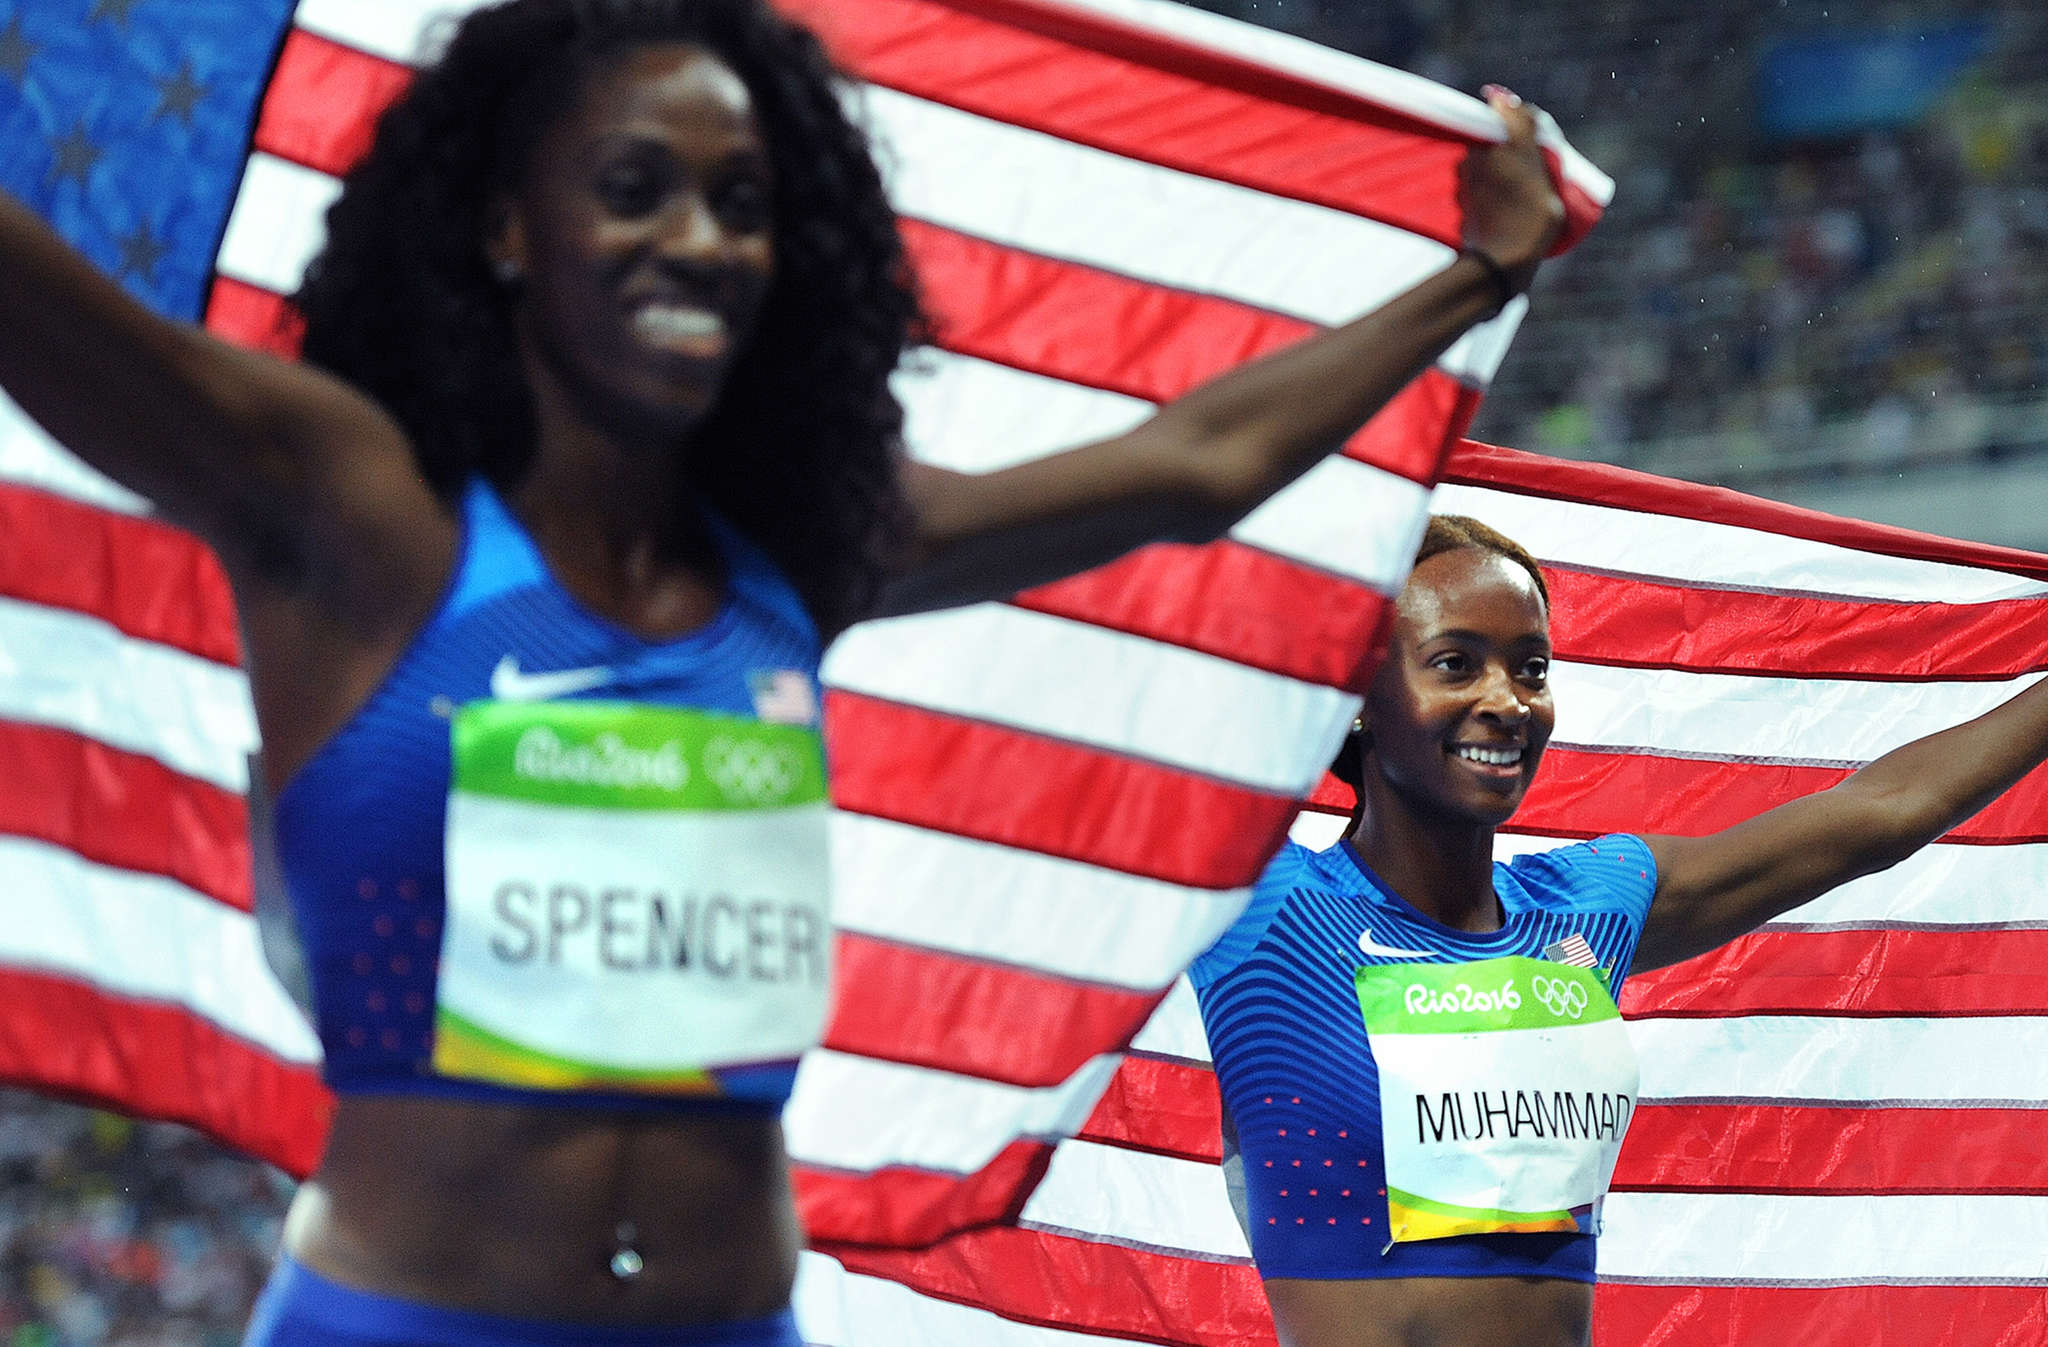 Hurdlers Ashley Spencer (left) and Dalilah Muhammed are part of the diverse U.S. Olympic team.